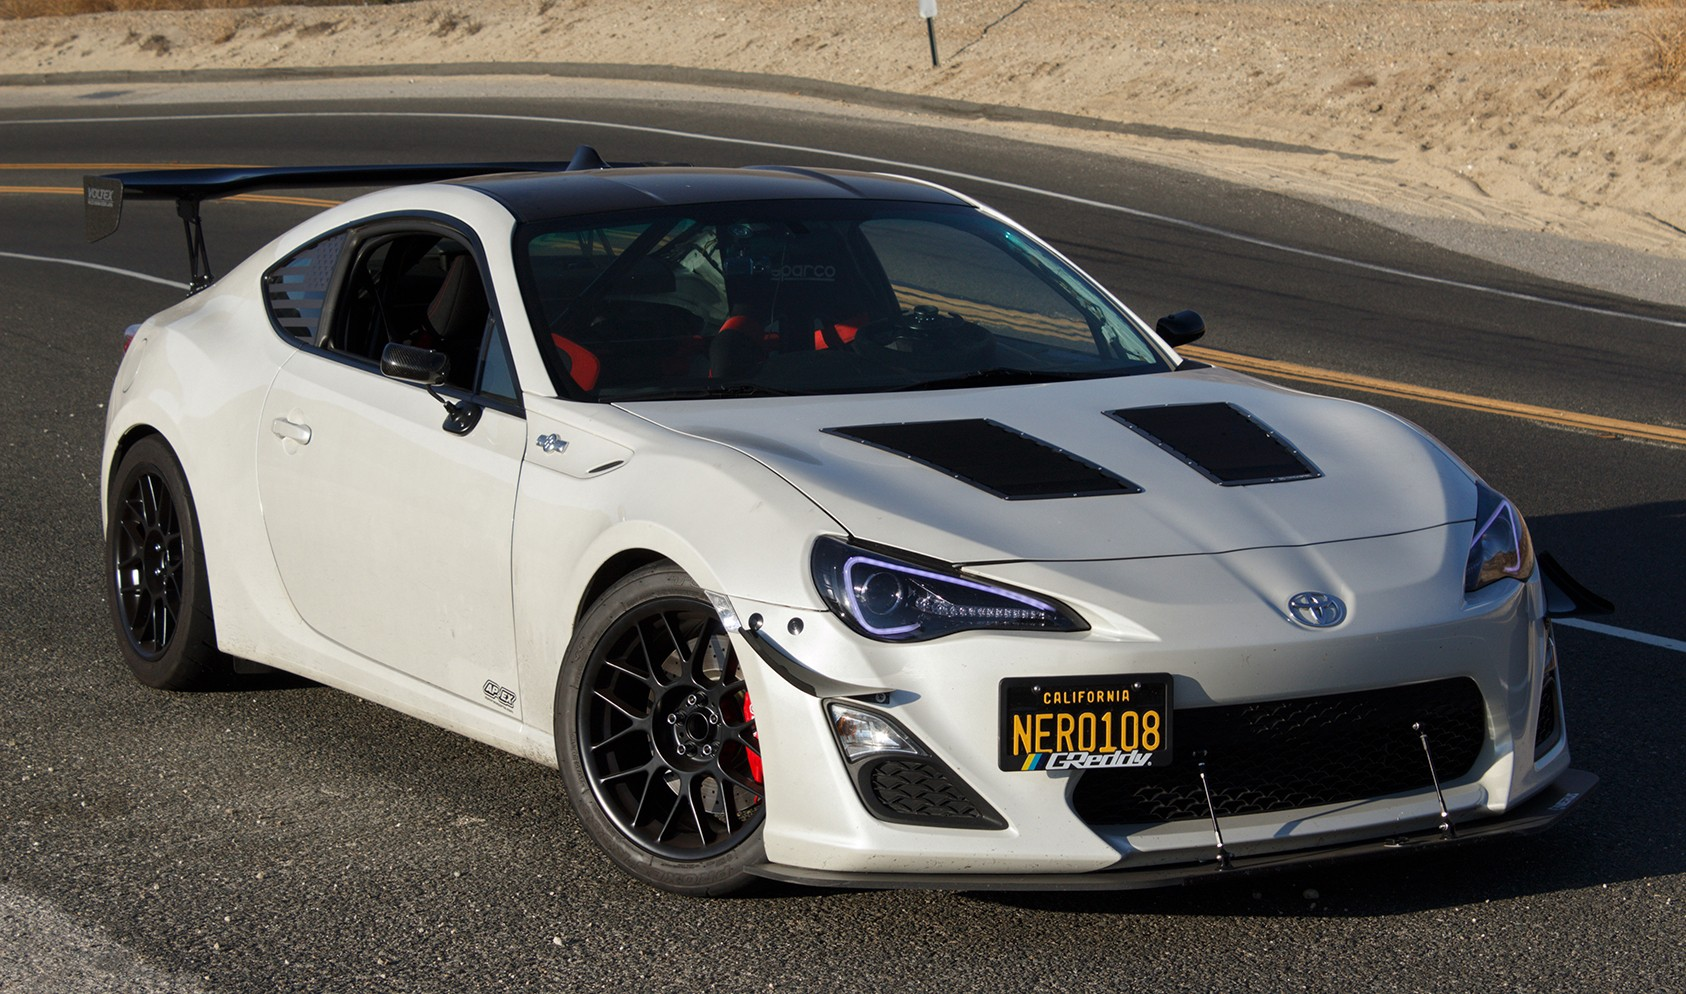 "Scion FR-S<br />Satin Black 17x9"" ET42 ARC-8 wheels with 245/40-17 Toyo R888 tires<br />Mods: 5mm front spacers, Brembo Brakes<br />Suspension: JRZ RS TWO Coilovers"